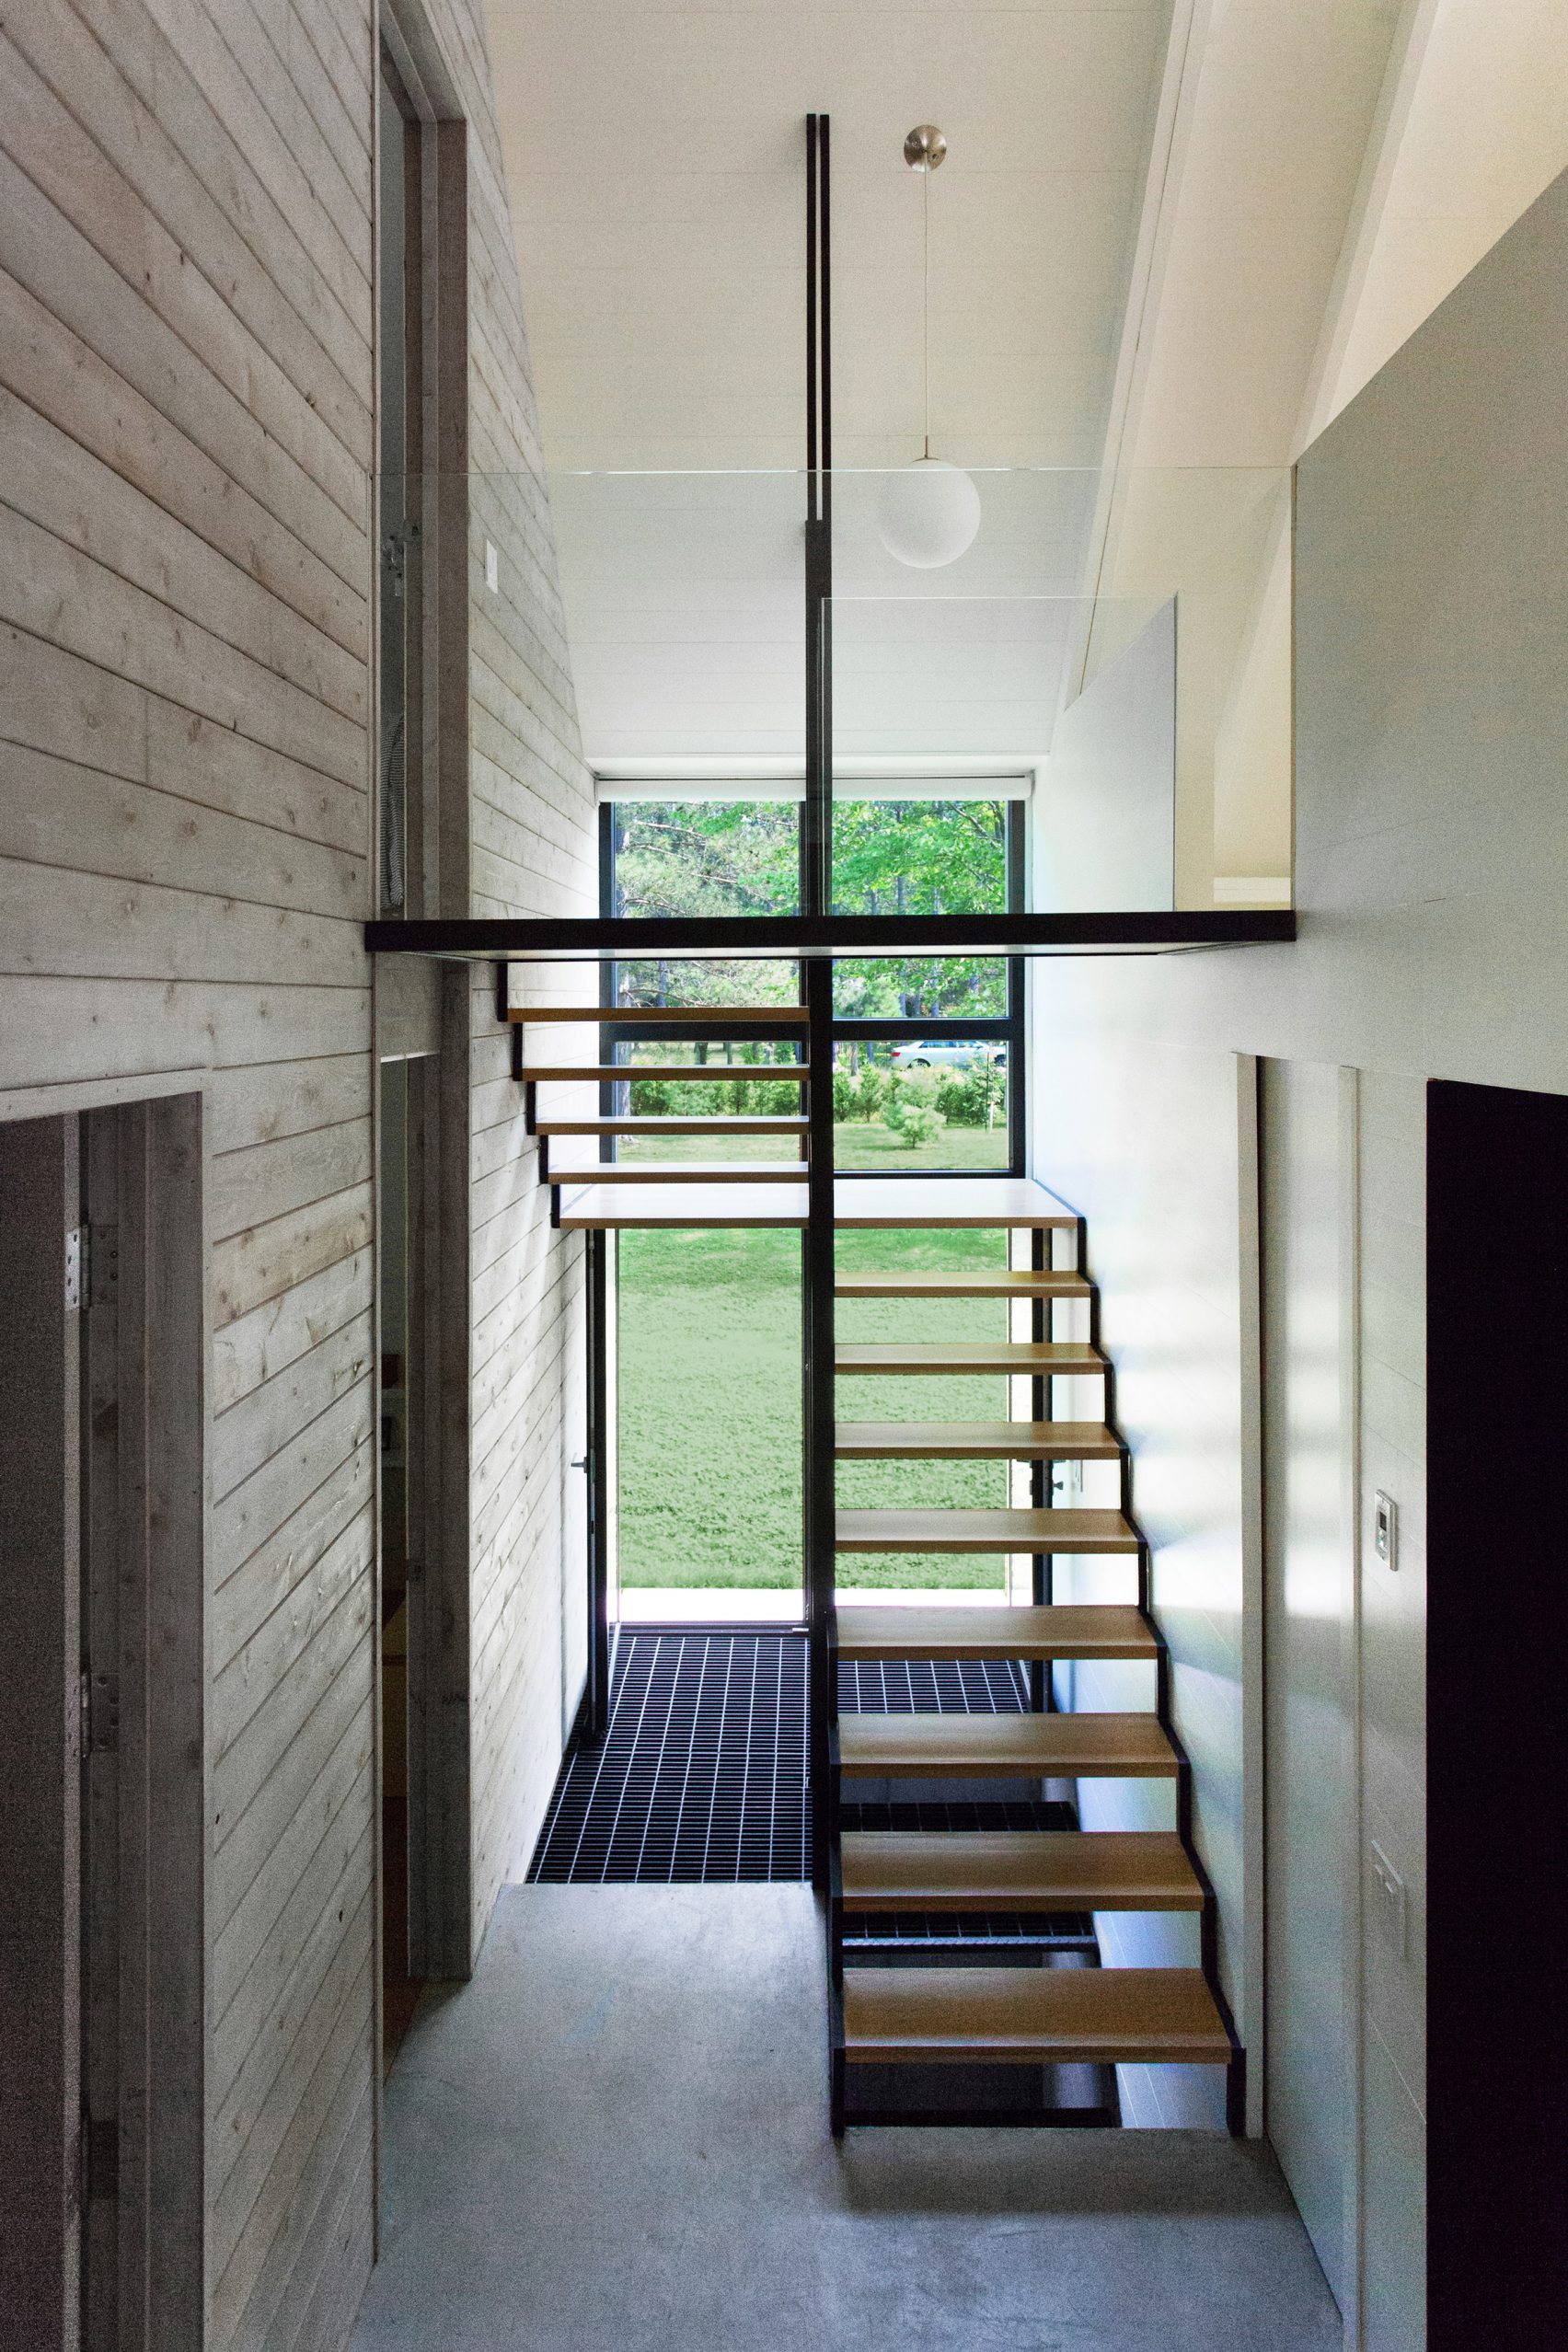 window-on-the-lake-yh2-architecture-residential-canada_dezeen_2364_col_12-1704x2556.jpg